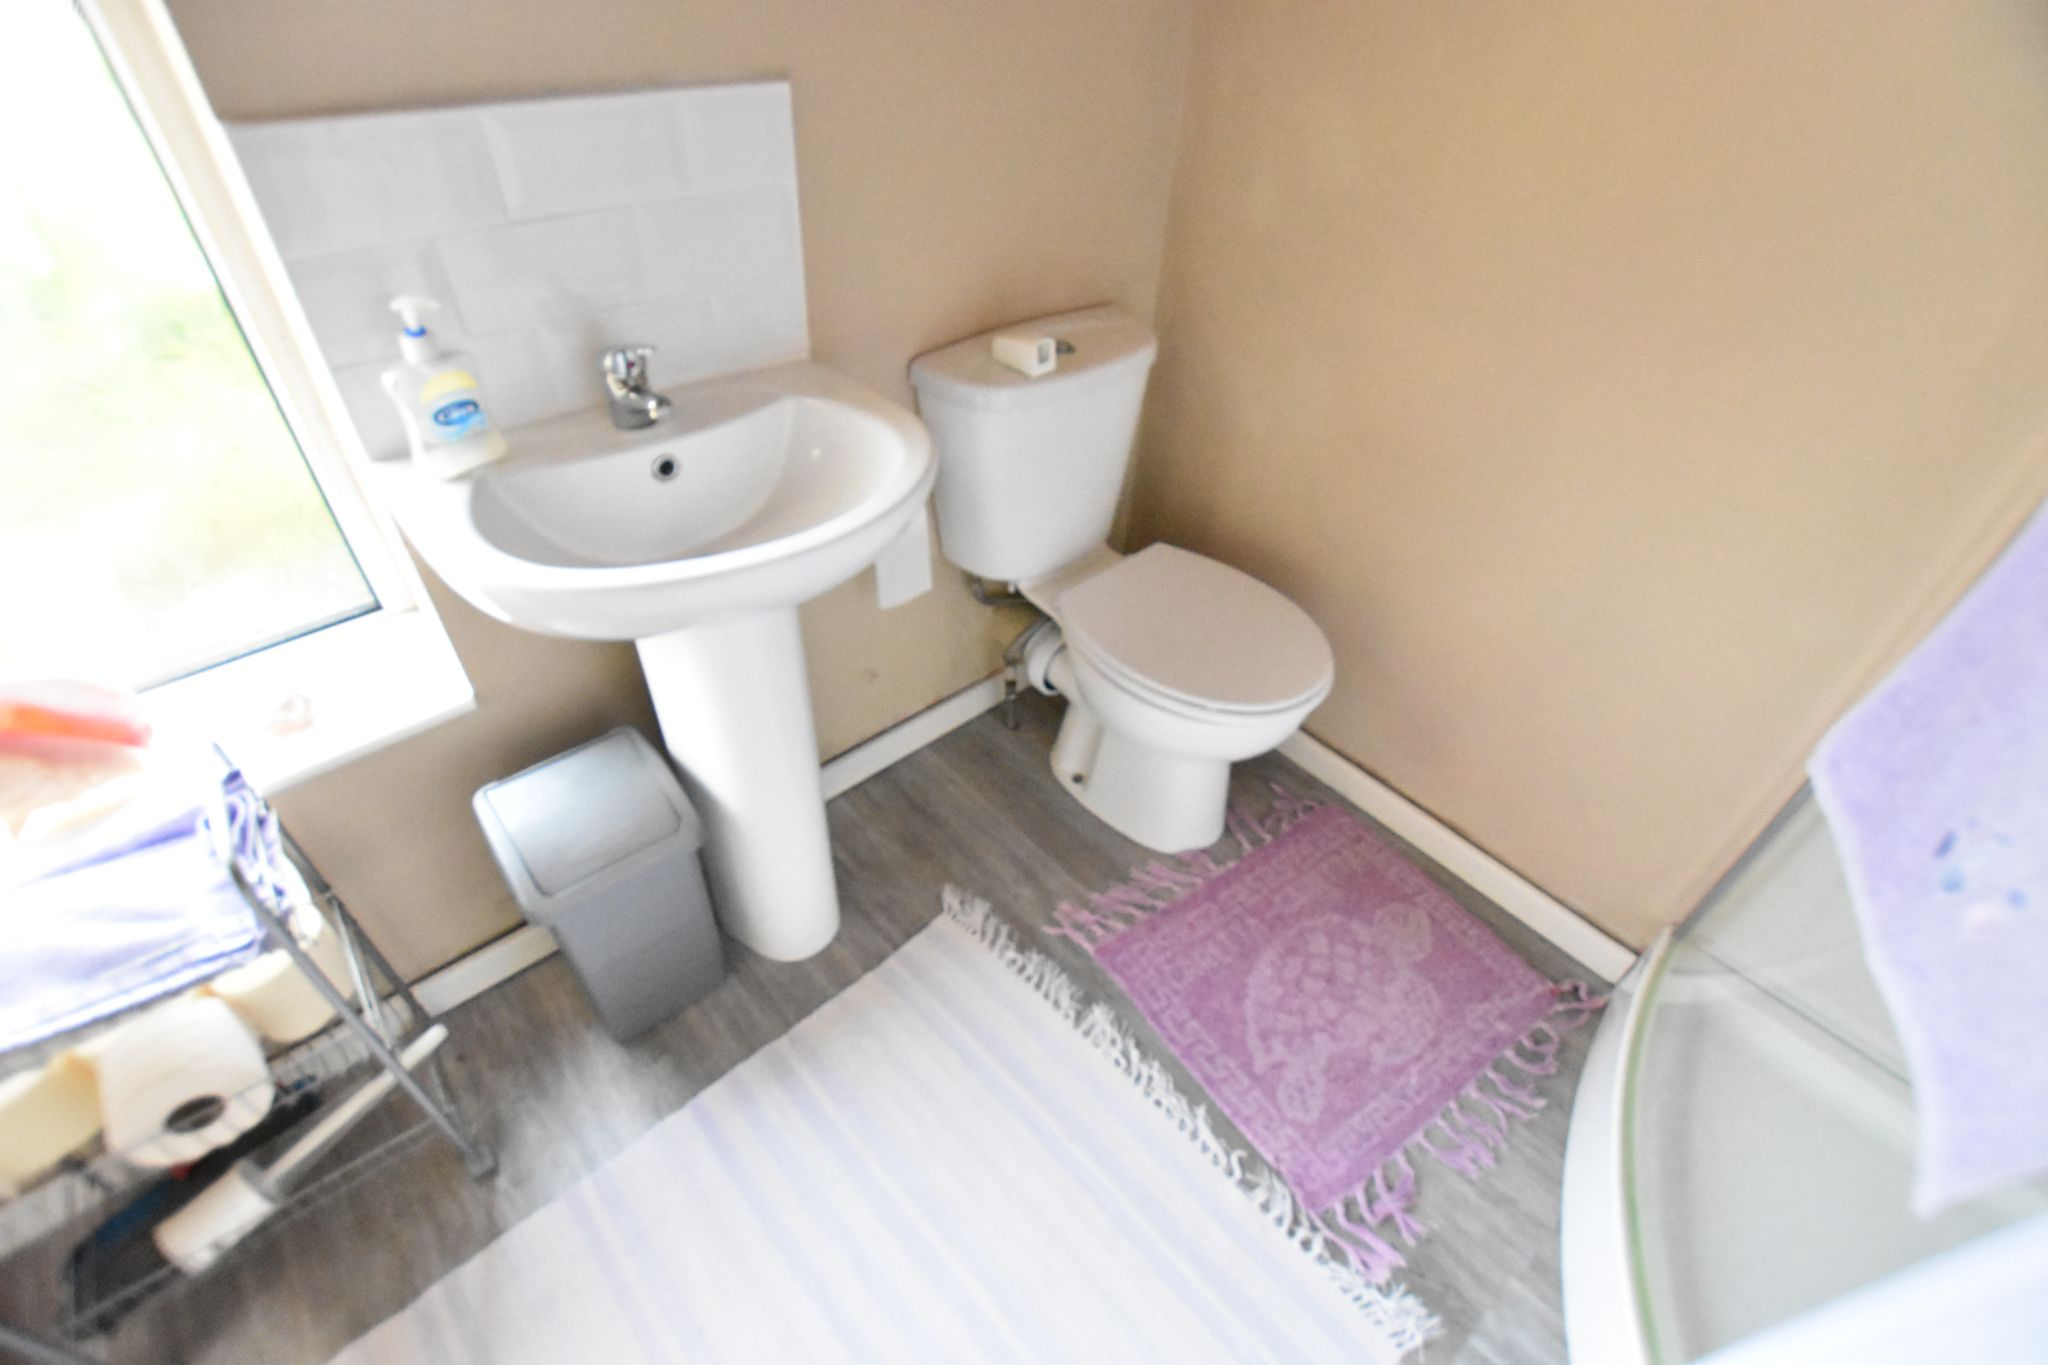 Image 3 of 4 of BATHROOM, on Accommodation Comprising for